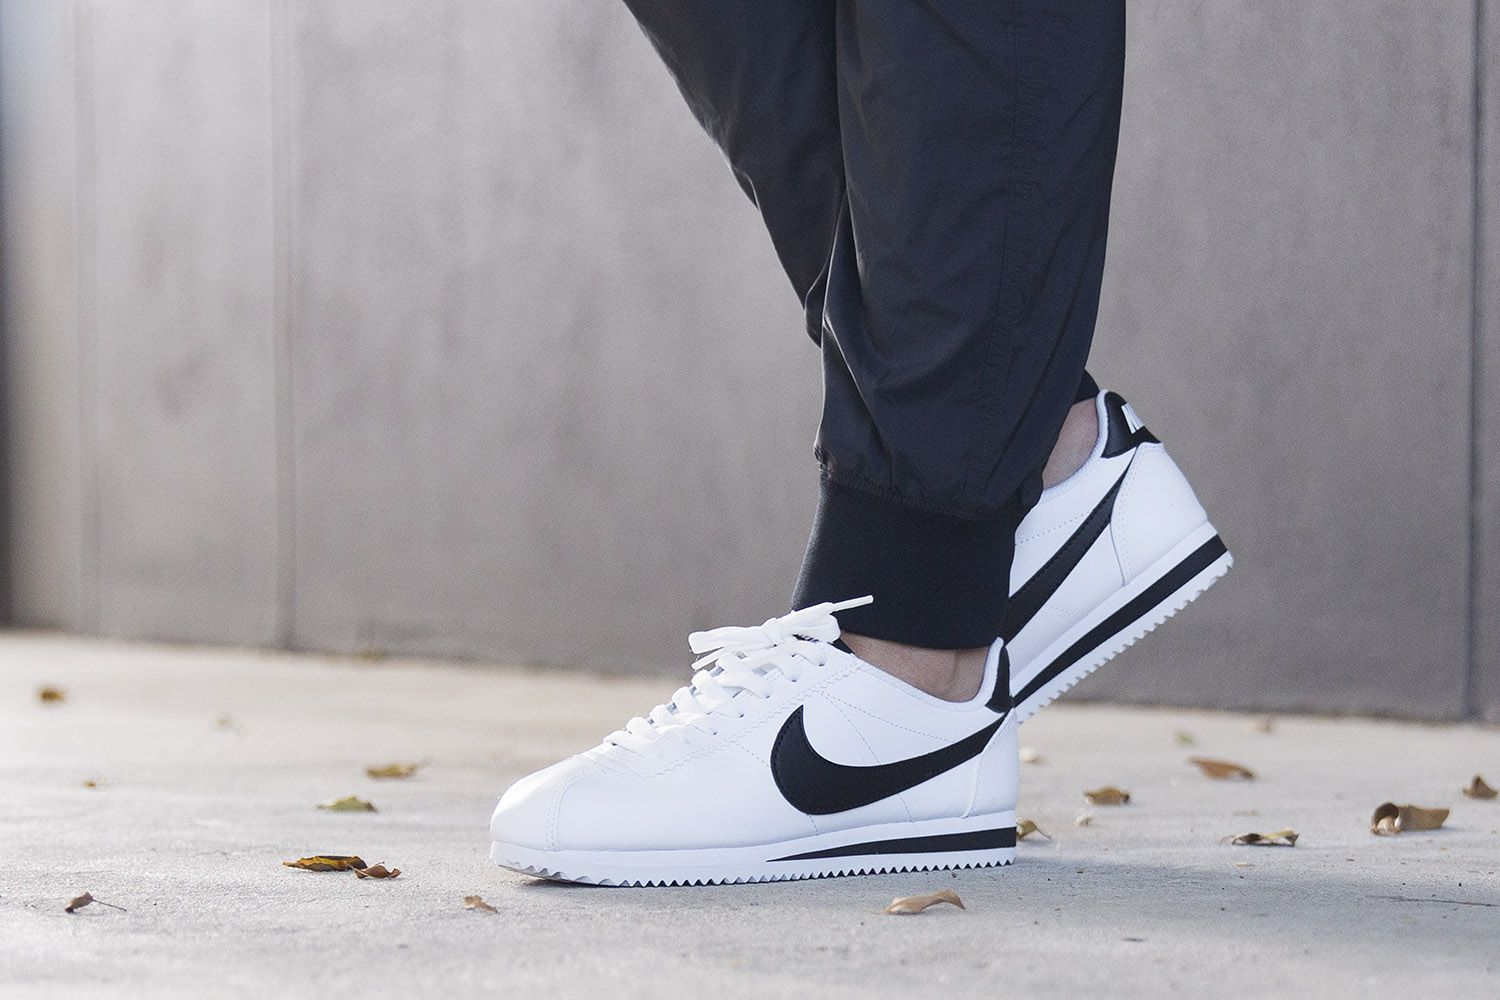 nike CLASSIC CORTEZ LEATHER WhiteBlack bei